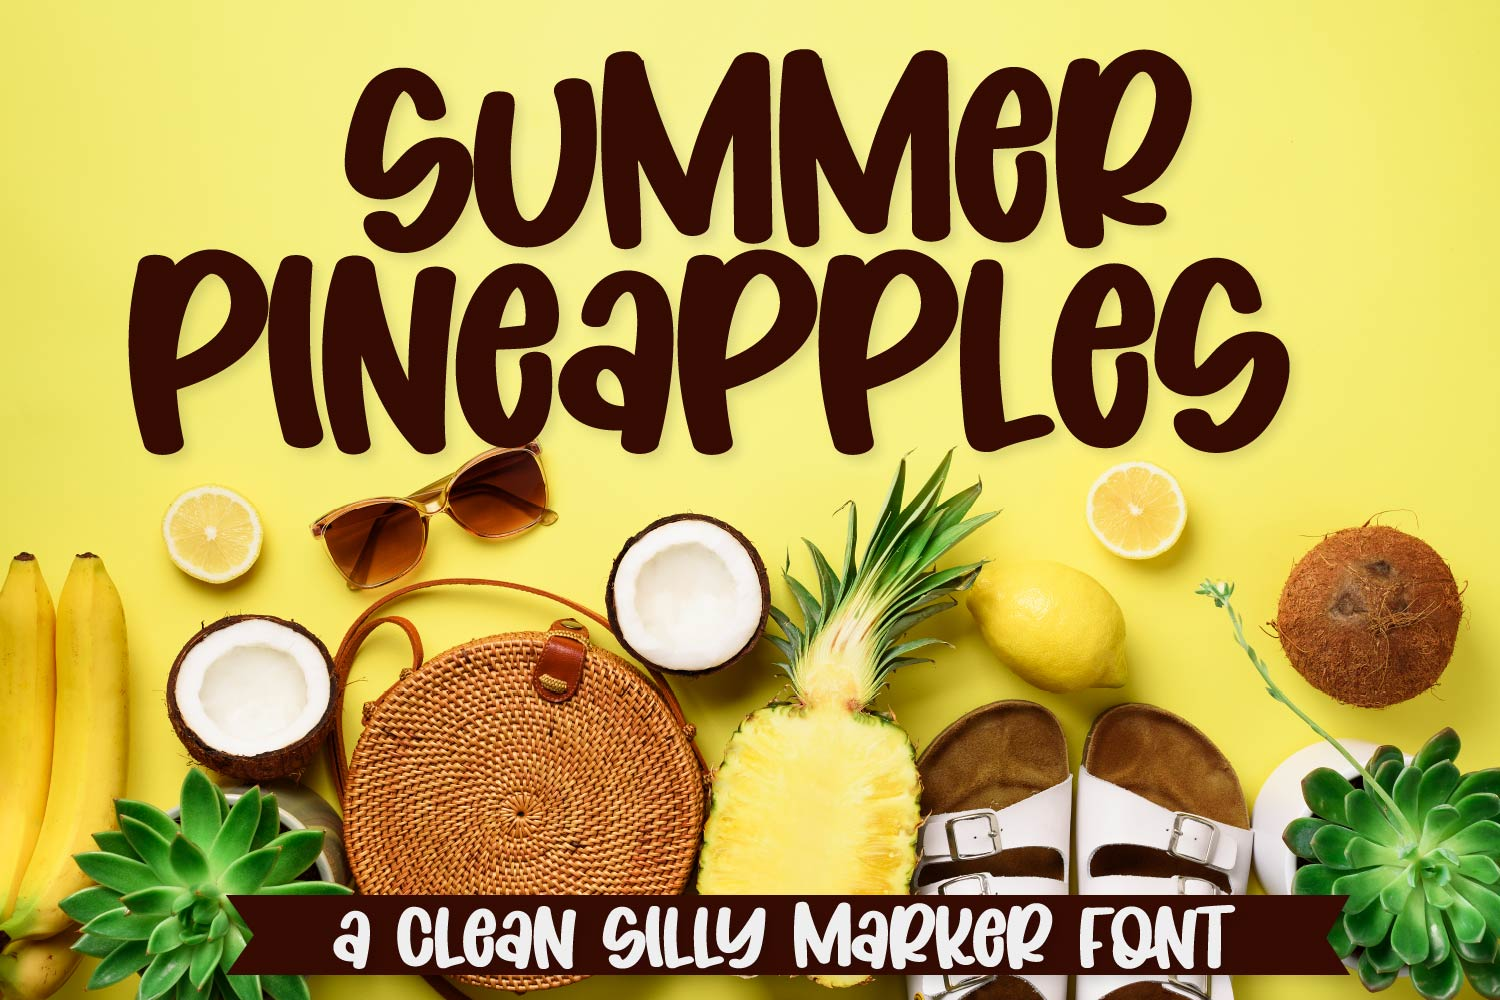 Coconut Wonder - A Simply Adorable Marker Font example image 7